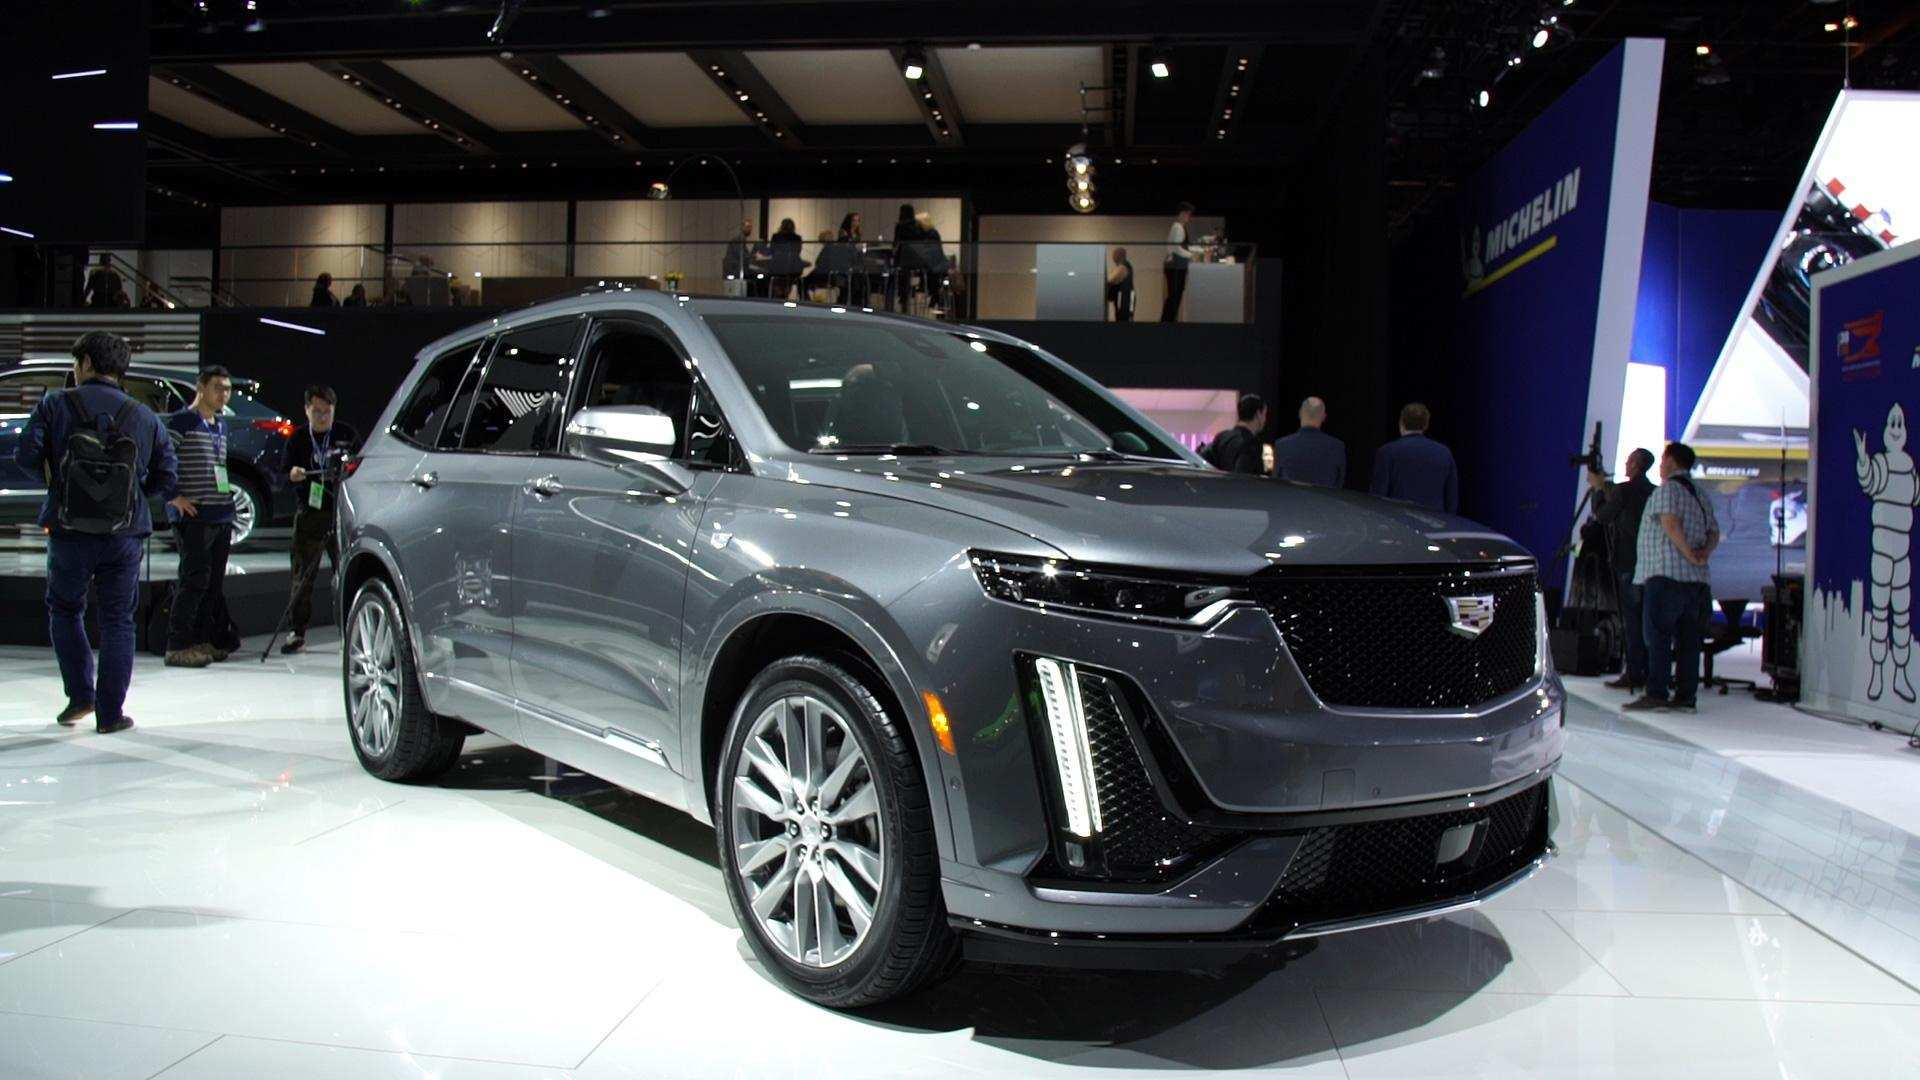 73 Gallery of 2020 Cadillac Xt6 Review Photos with 2020 Cadillac Xt6 Review